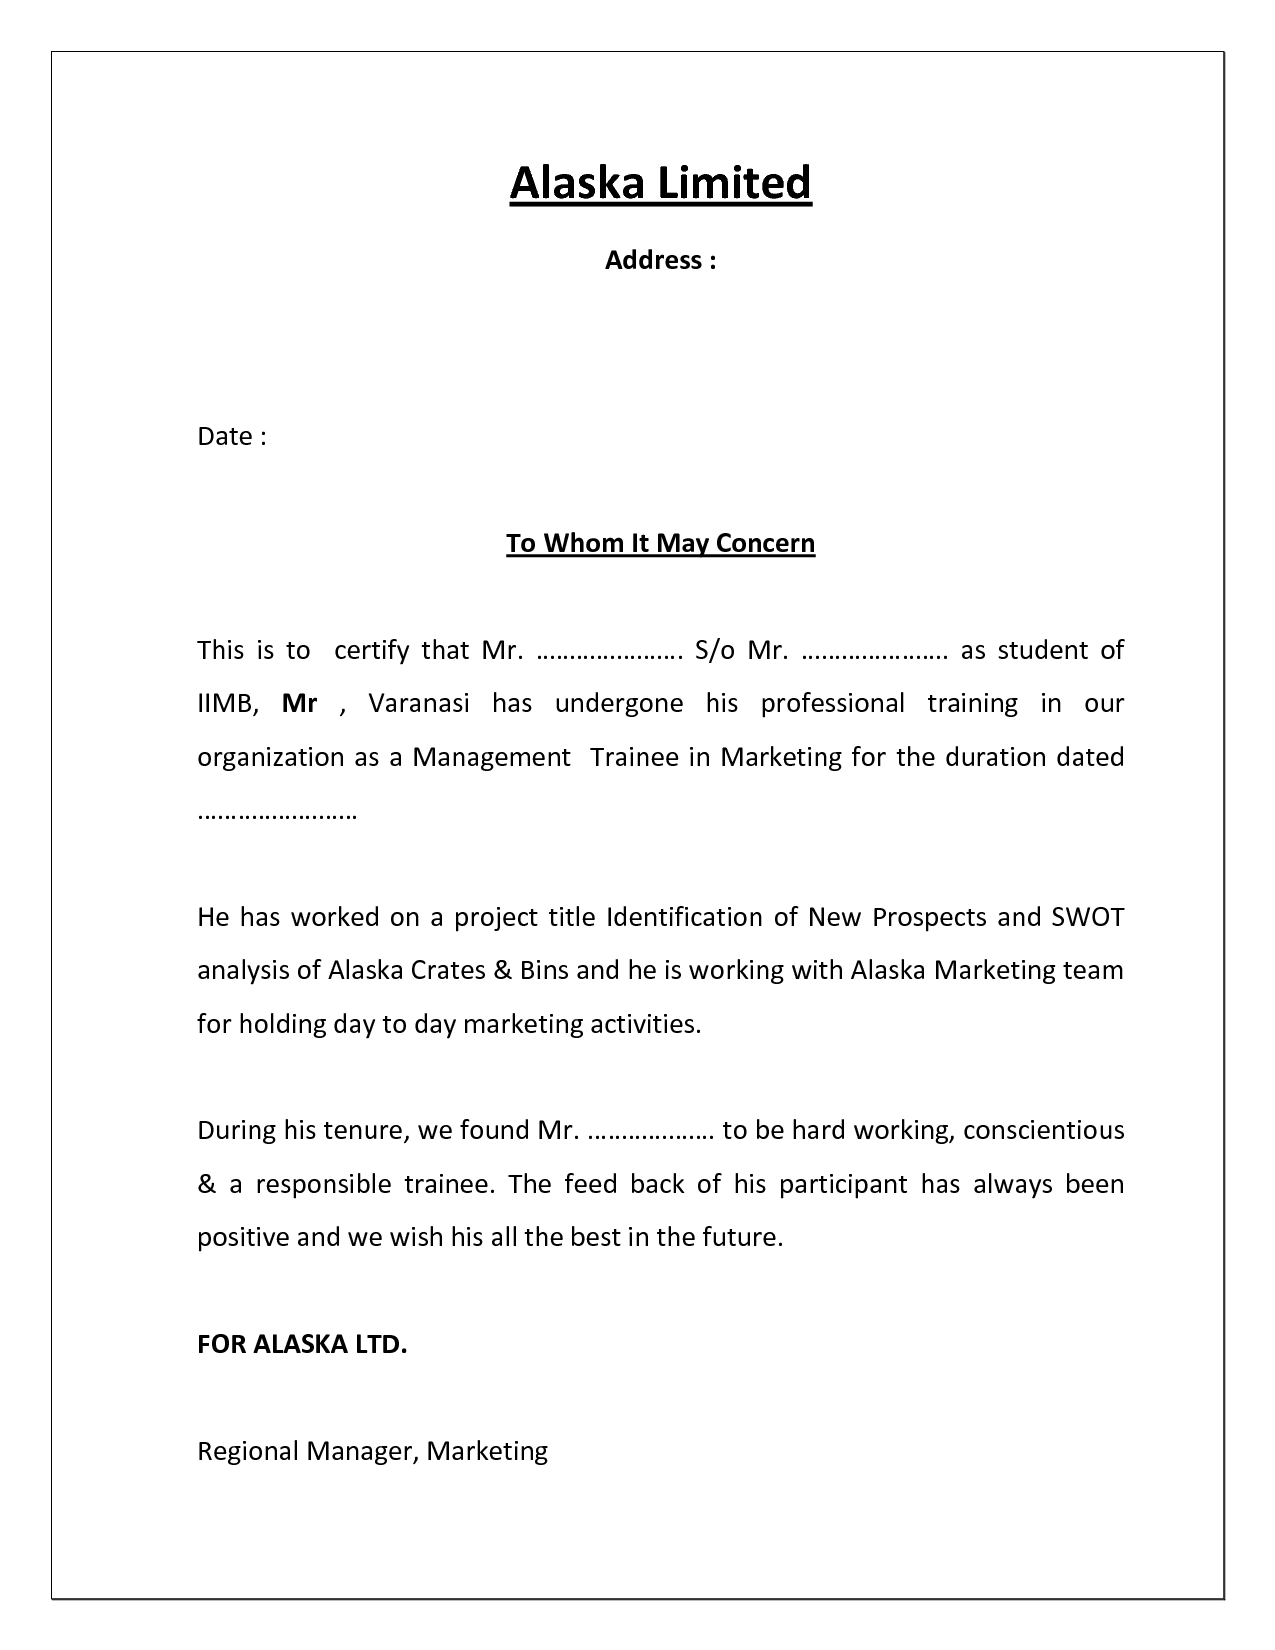 Project Confirmation Letter Format From Company. Project Completion Certificate Template  Cover Latter Sample